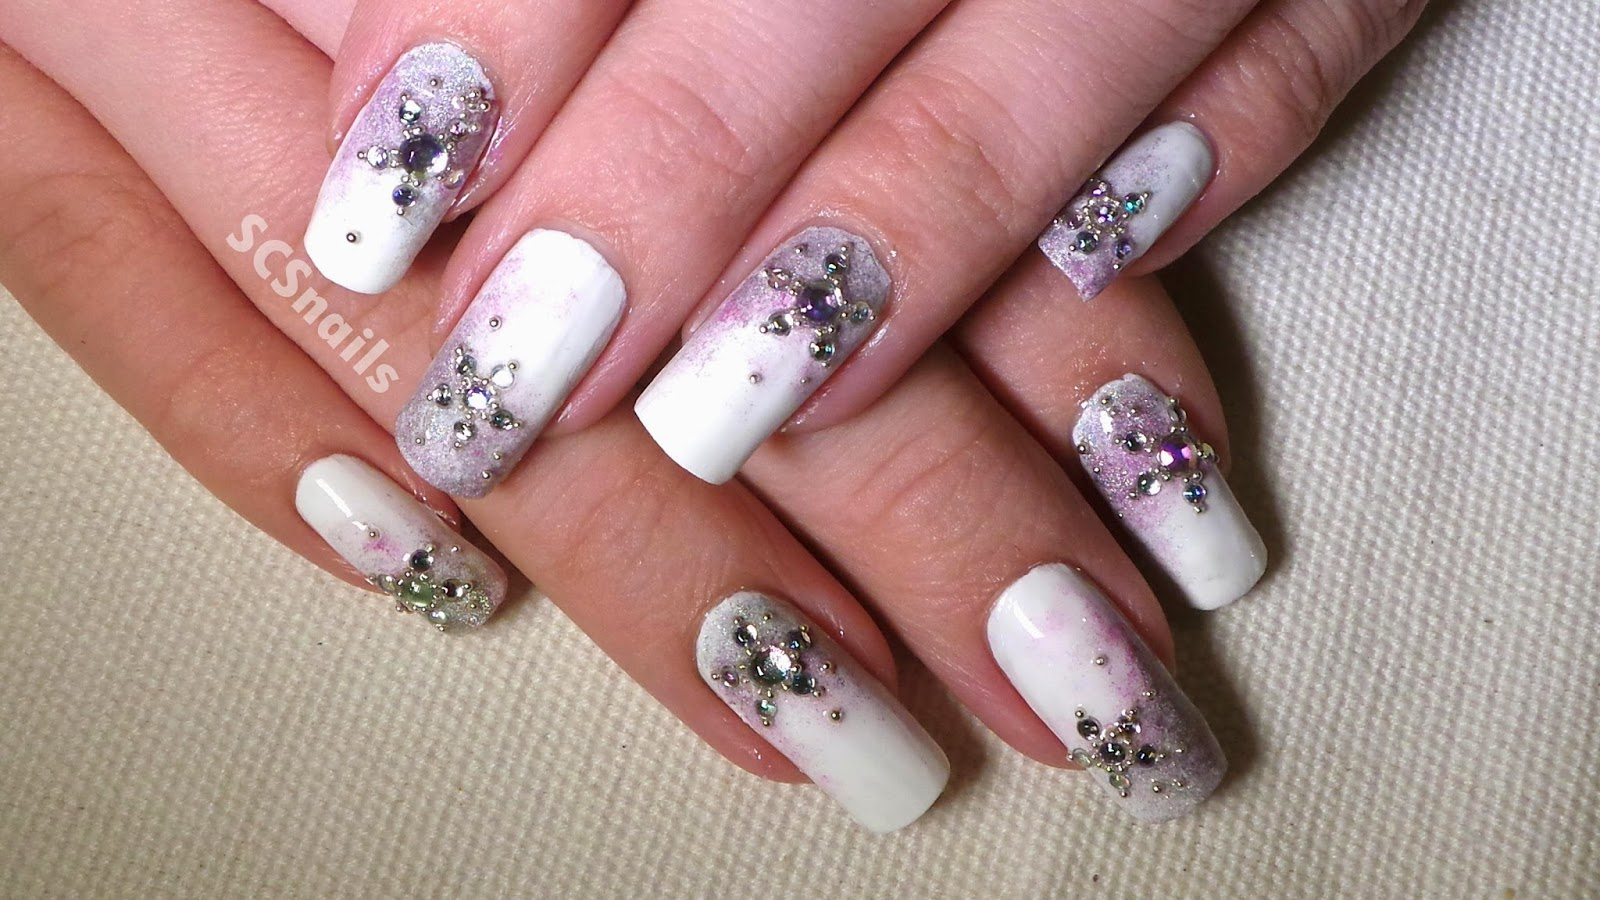 SCS nails: Mad Hatter, Totoro, Snowflakes & Poinsettias